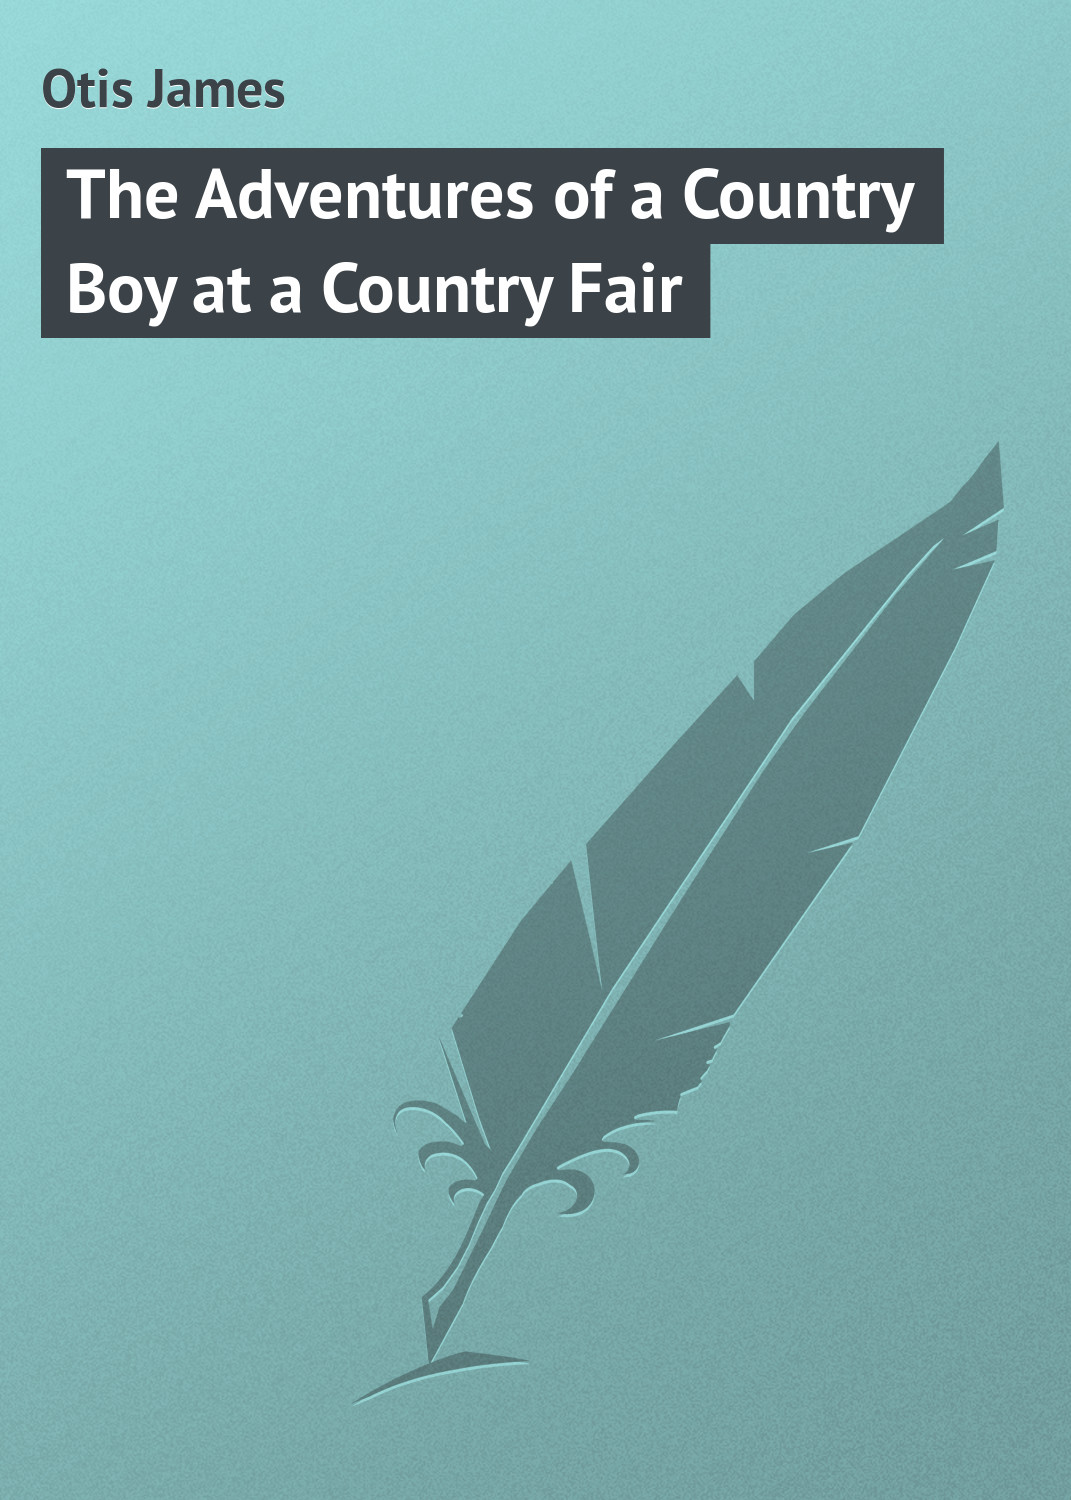 Otis James The Adventures of a Country Boy at a Country Fair a country road a tree